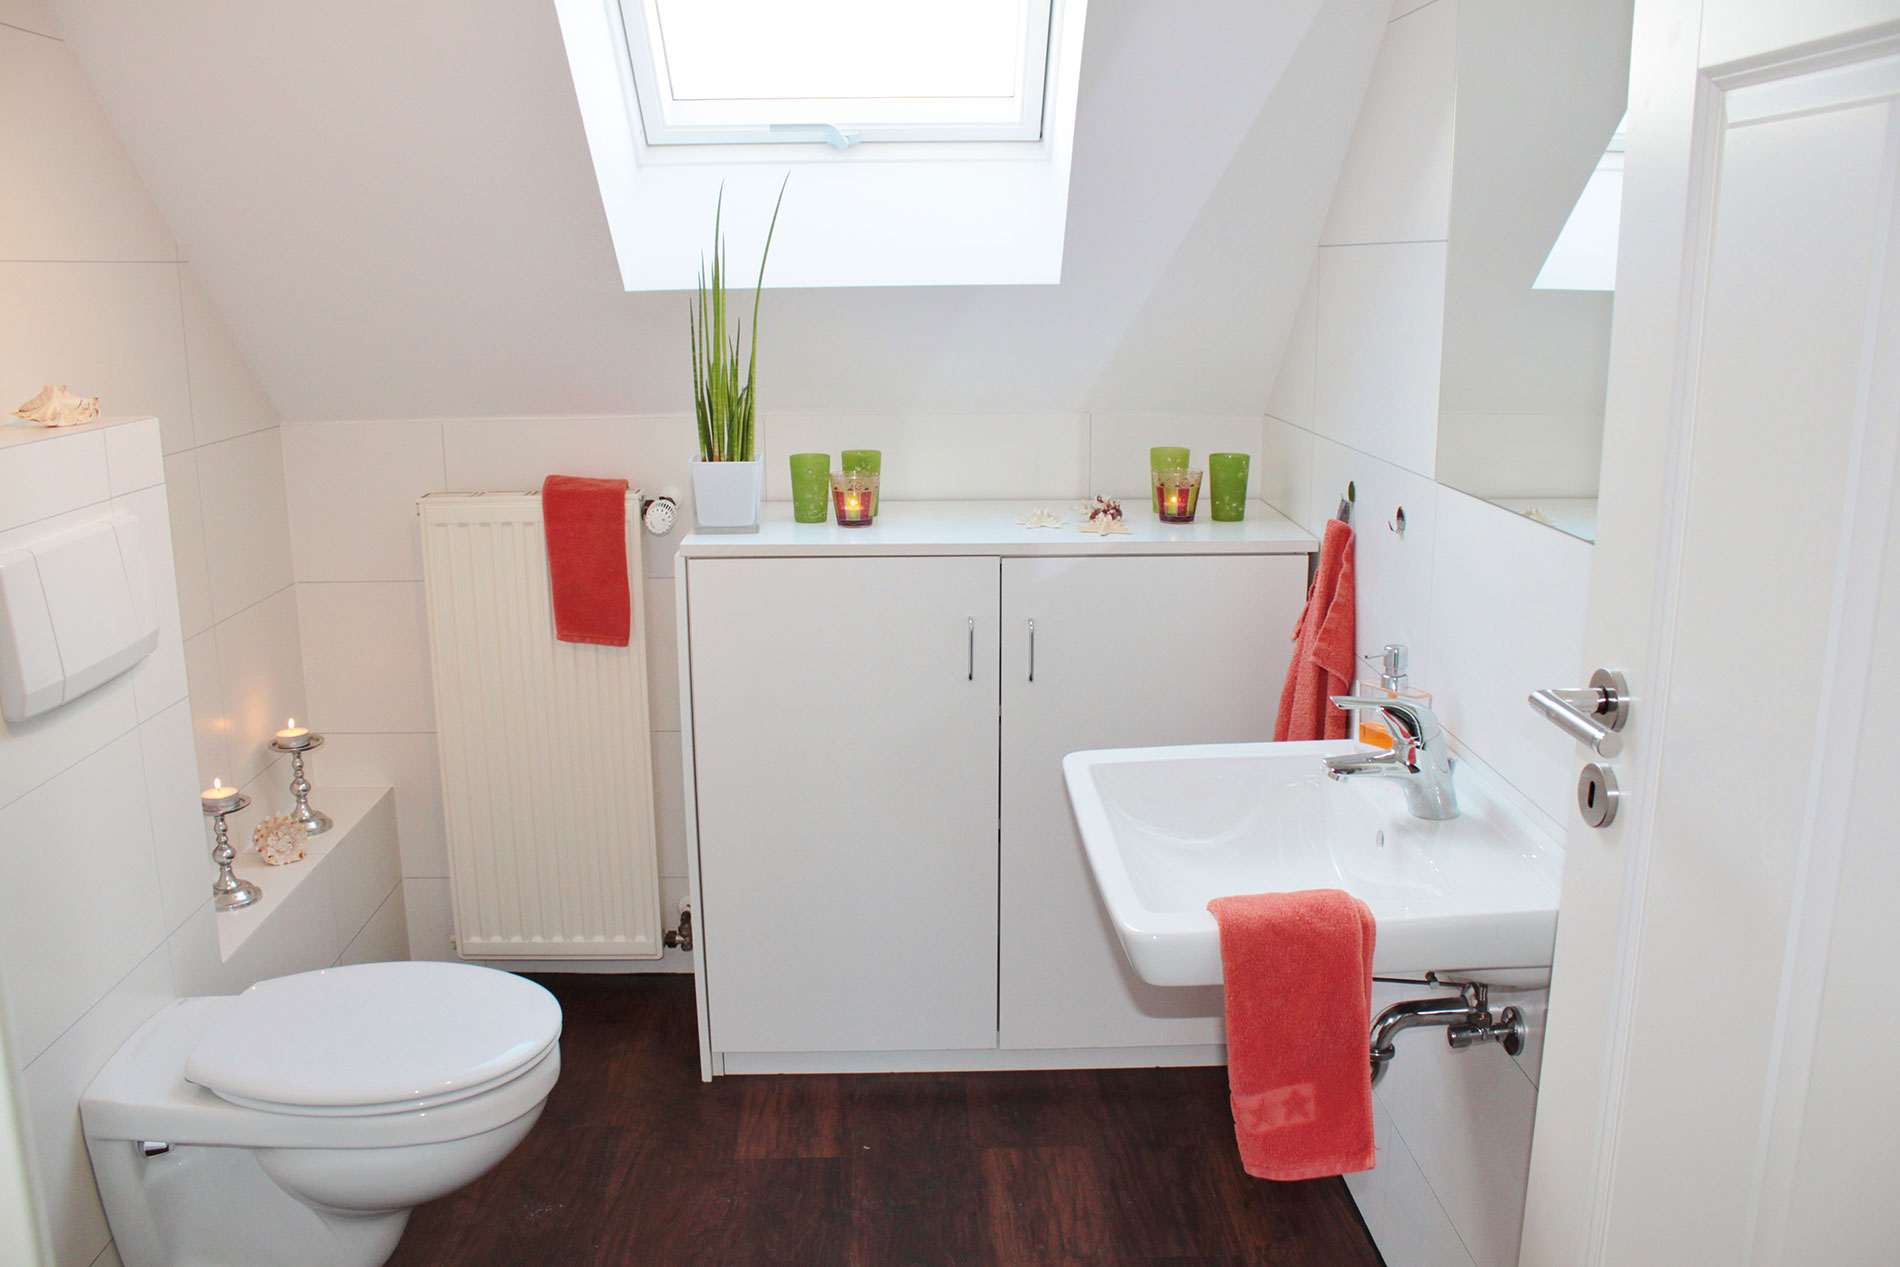 Small bathroom with large skylight